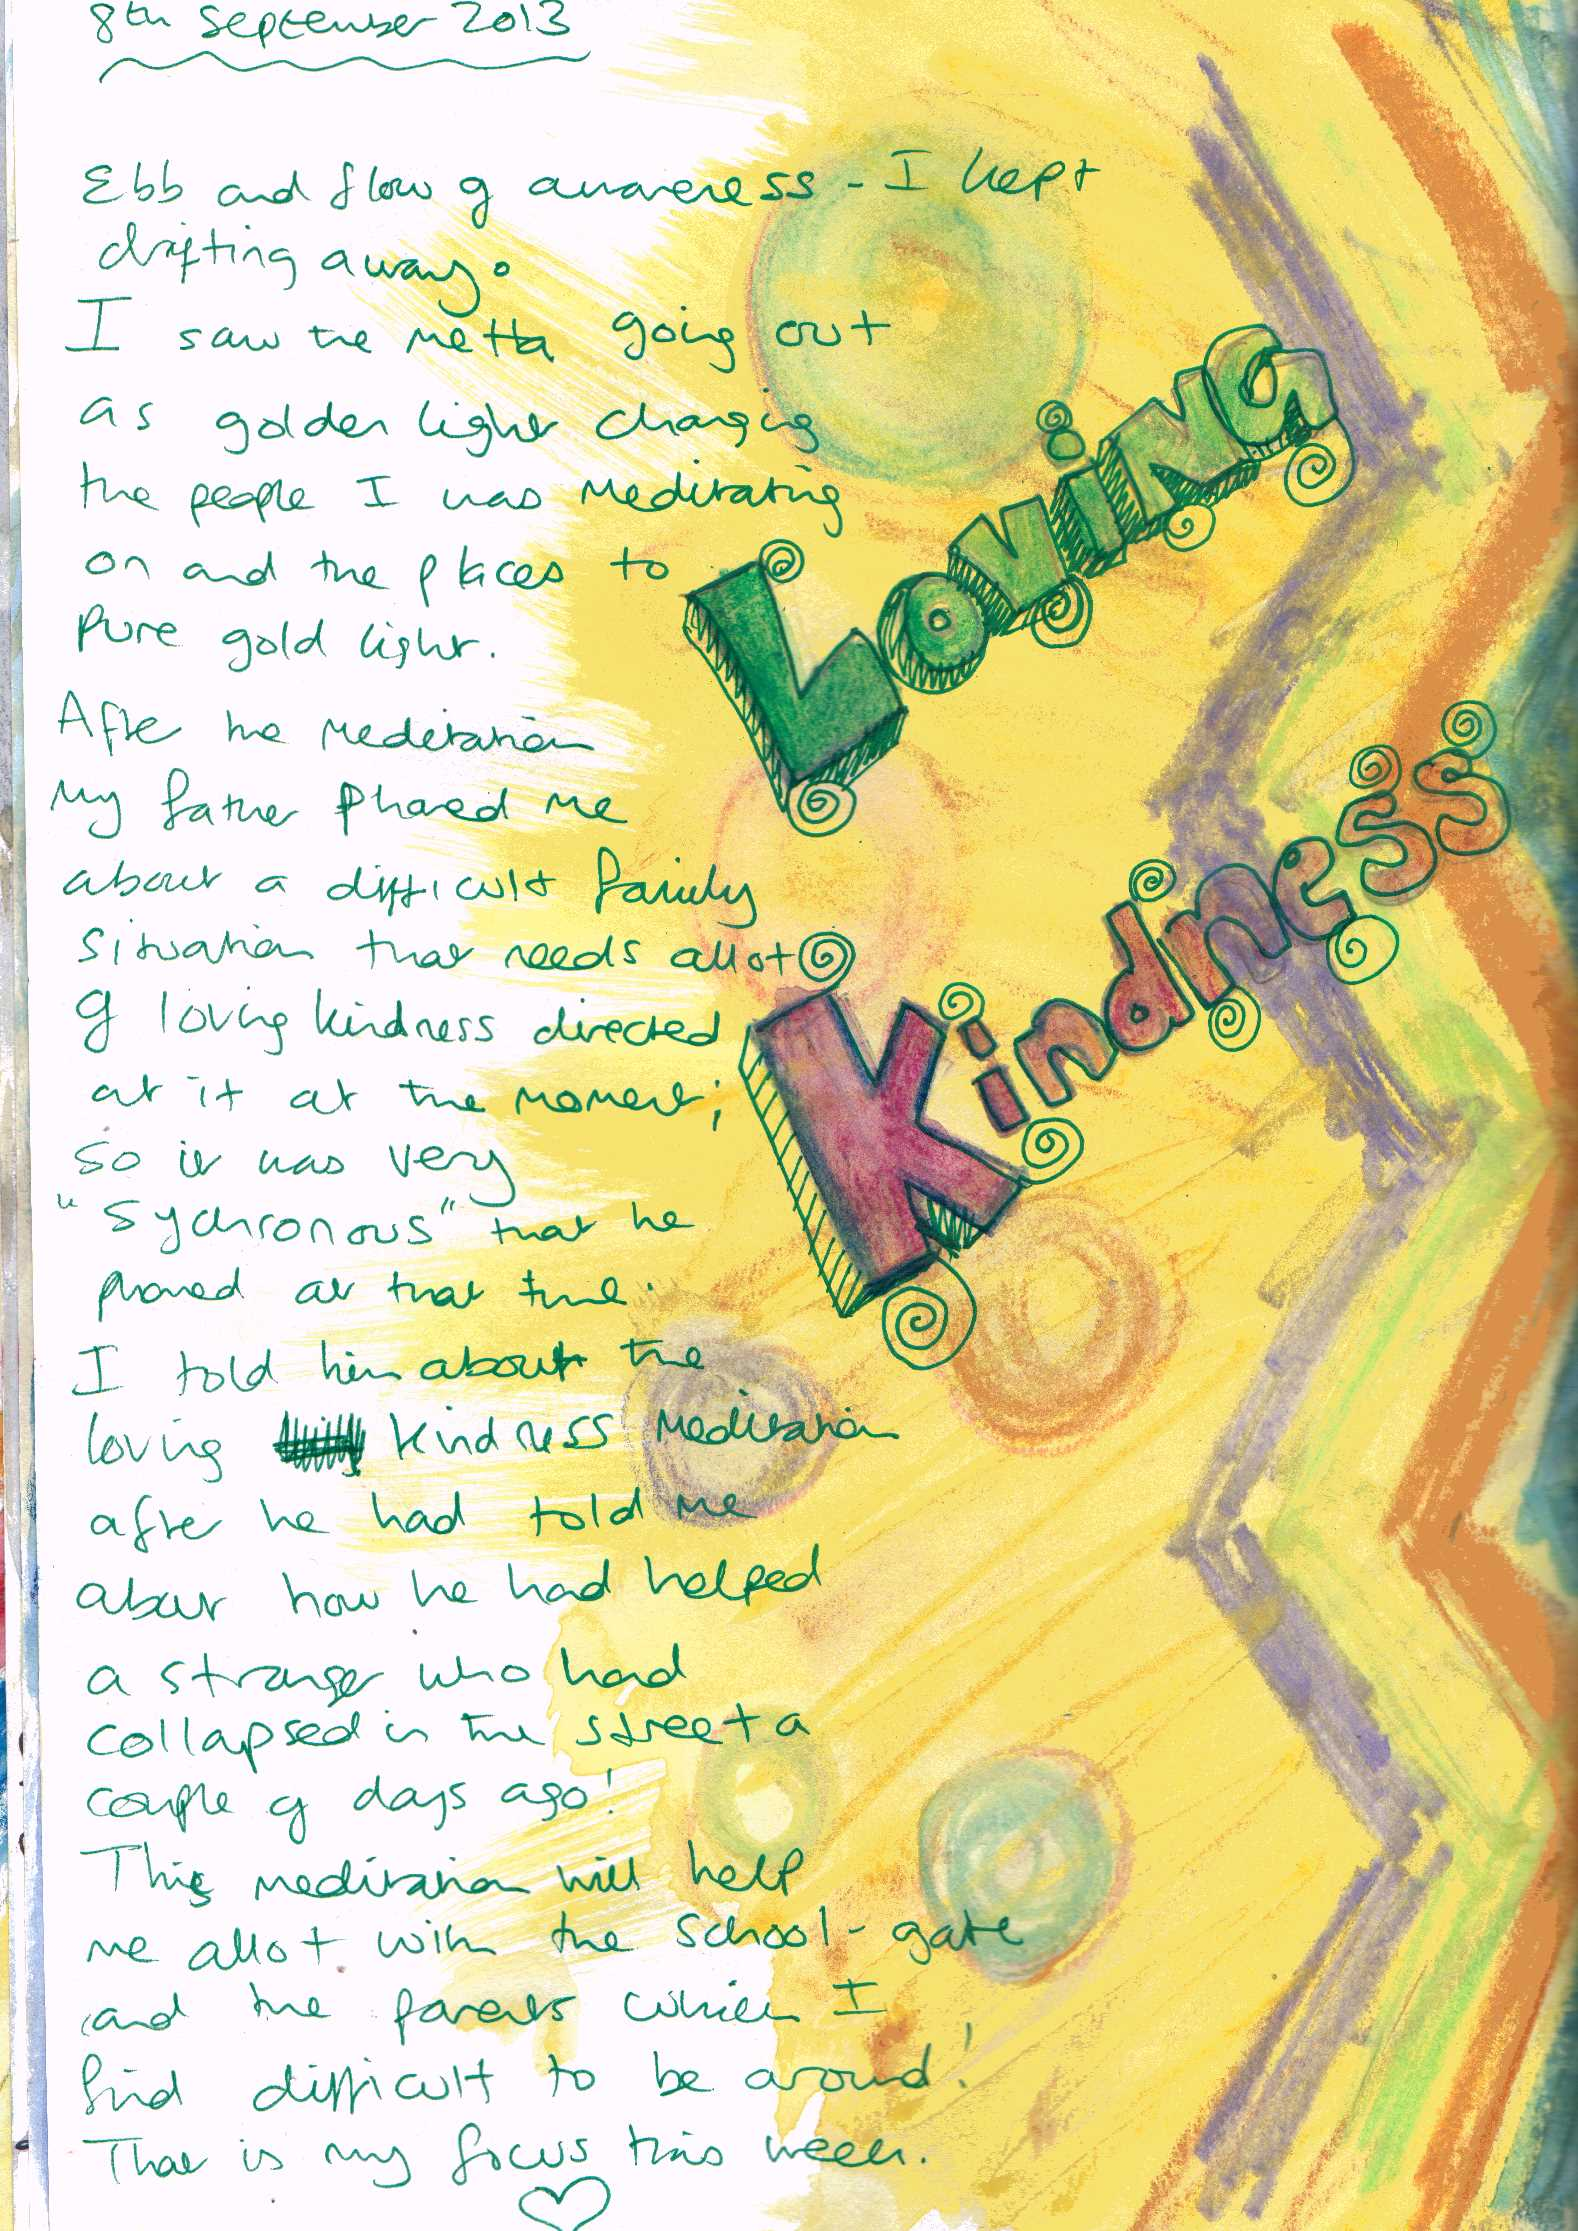 Loving Kindness 1